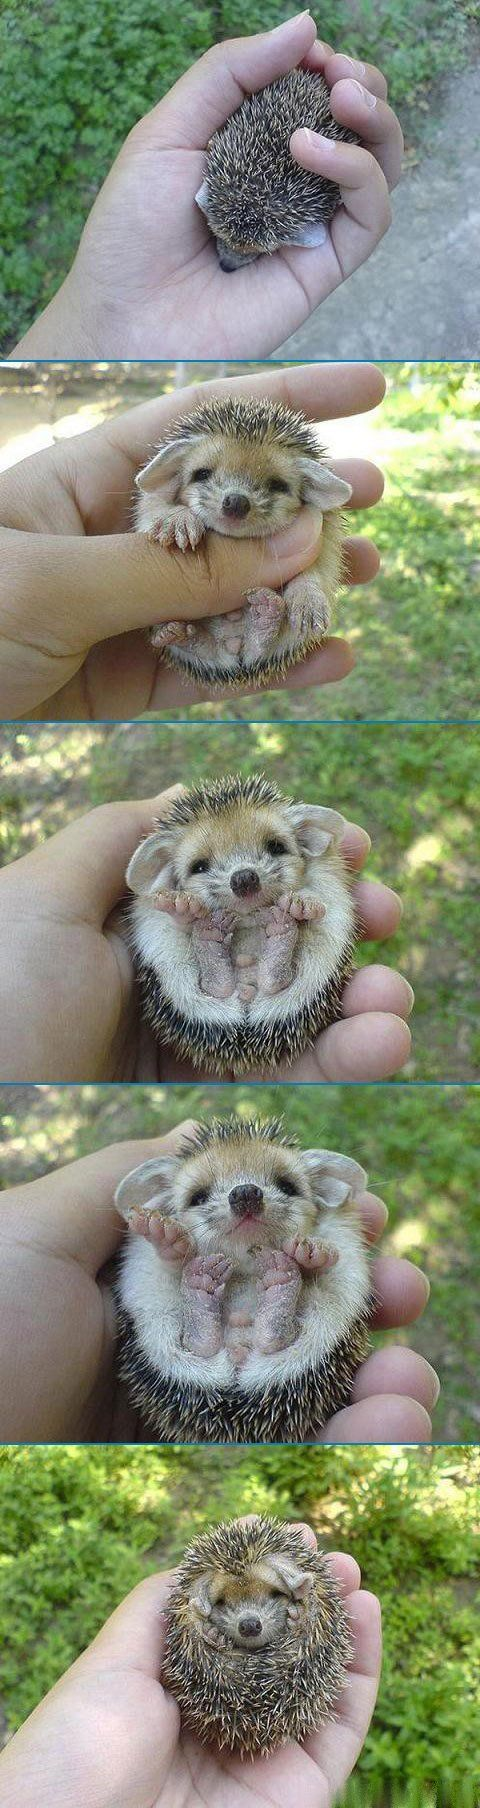 This is the cutest living creature I have ever seen. Ever.